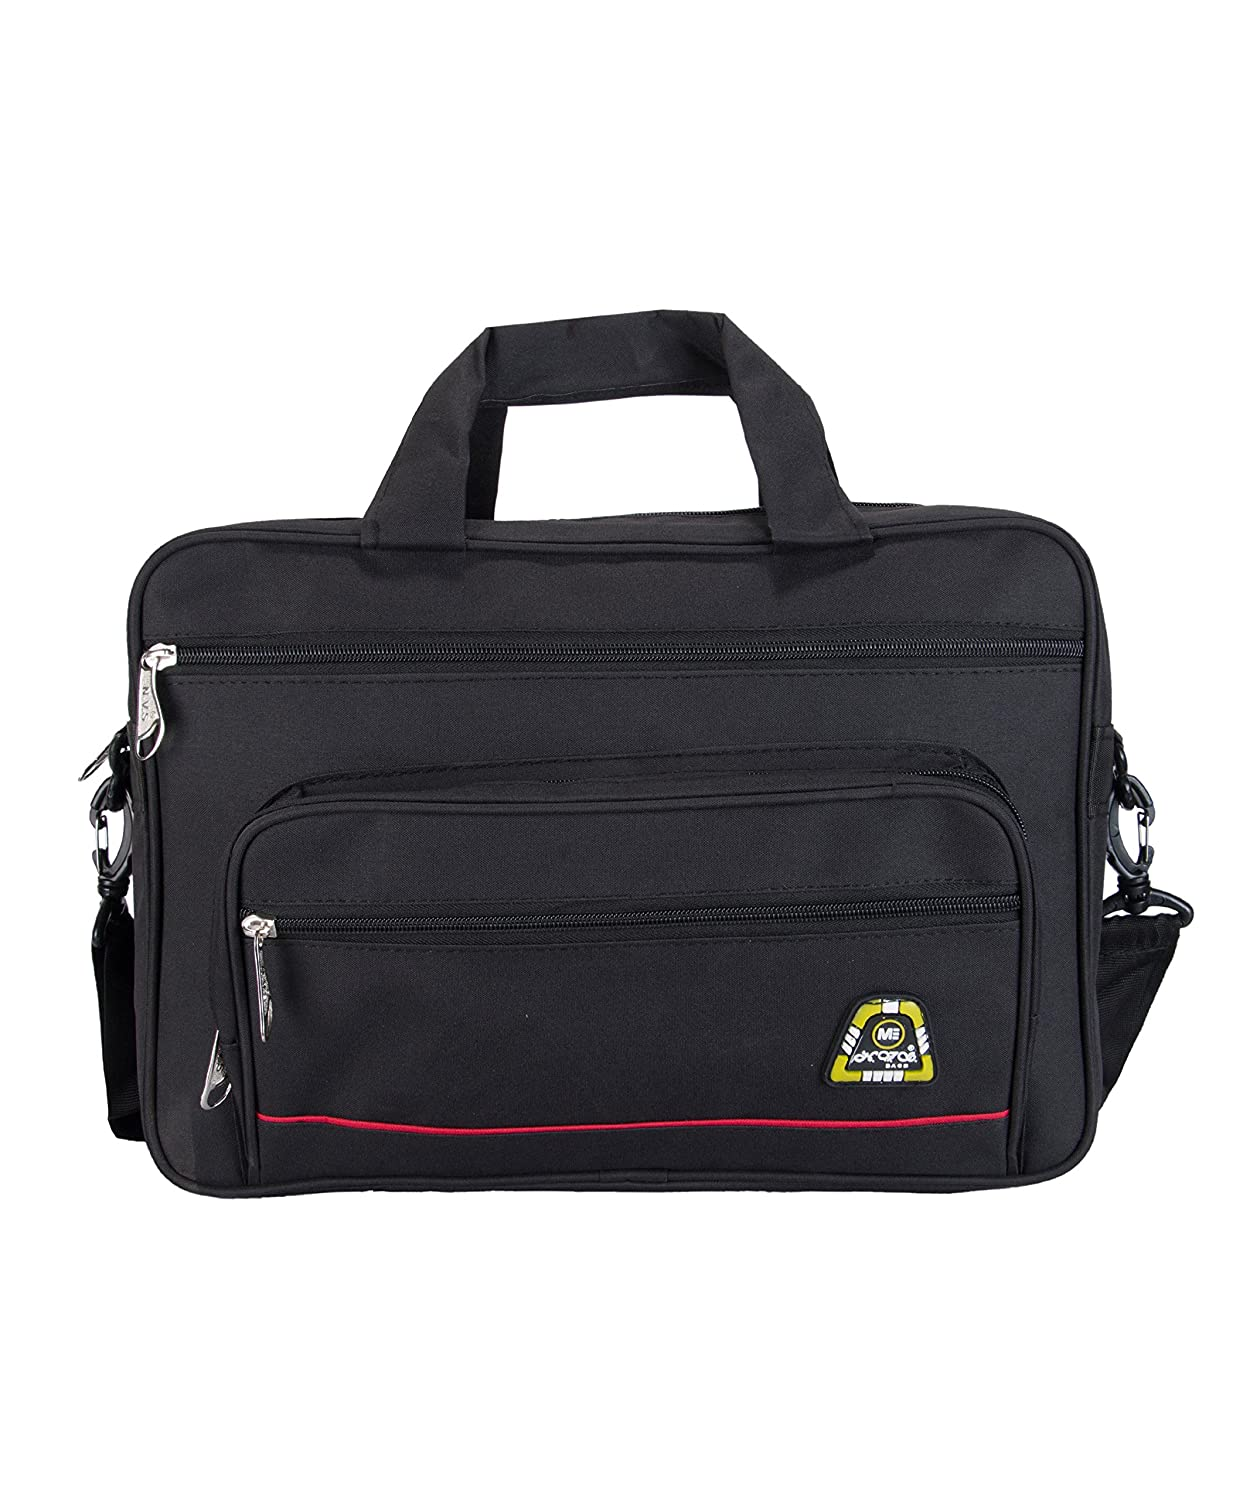 If you're looking for a new bag to conveniently carry all your stuff, check out the latest Crumpler bags on sale. Get free shipping when you spend over $50!